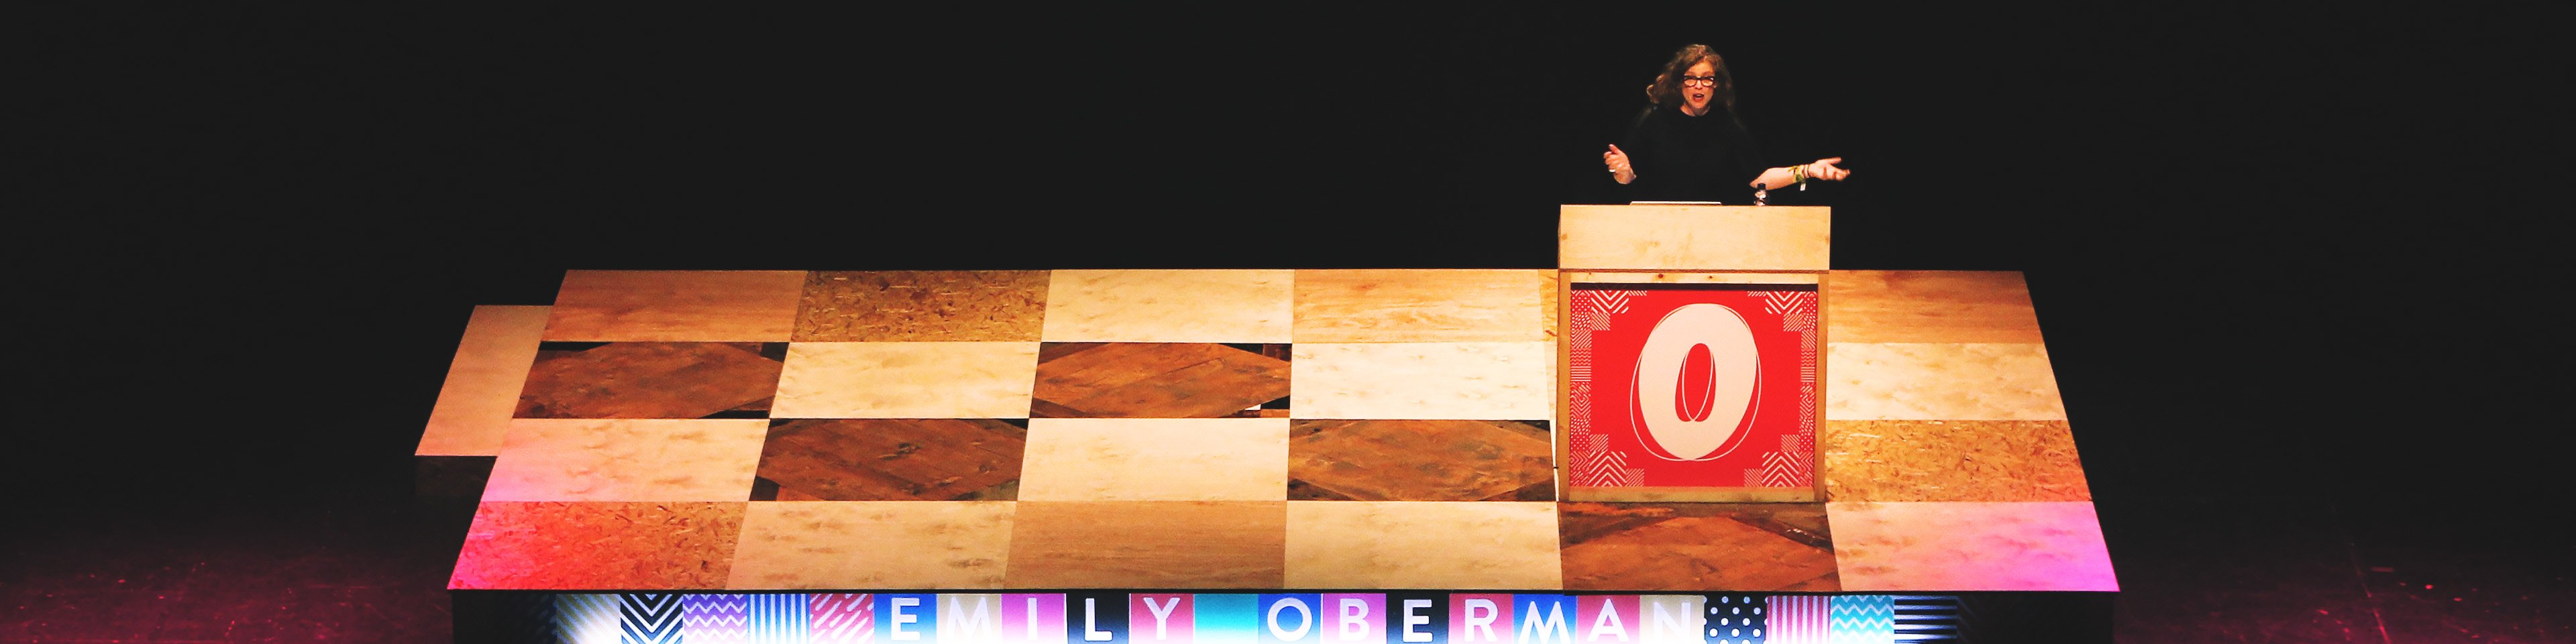 Emily Oberman at OFFSET 2015